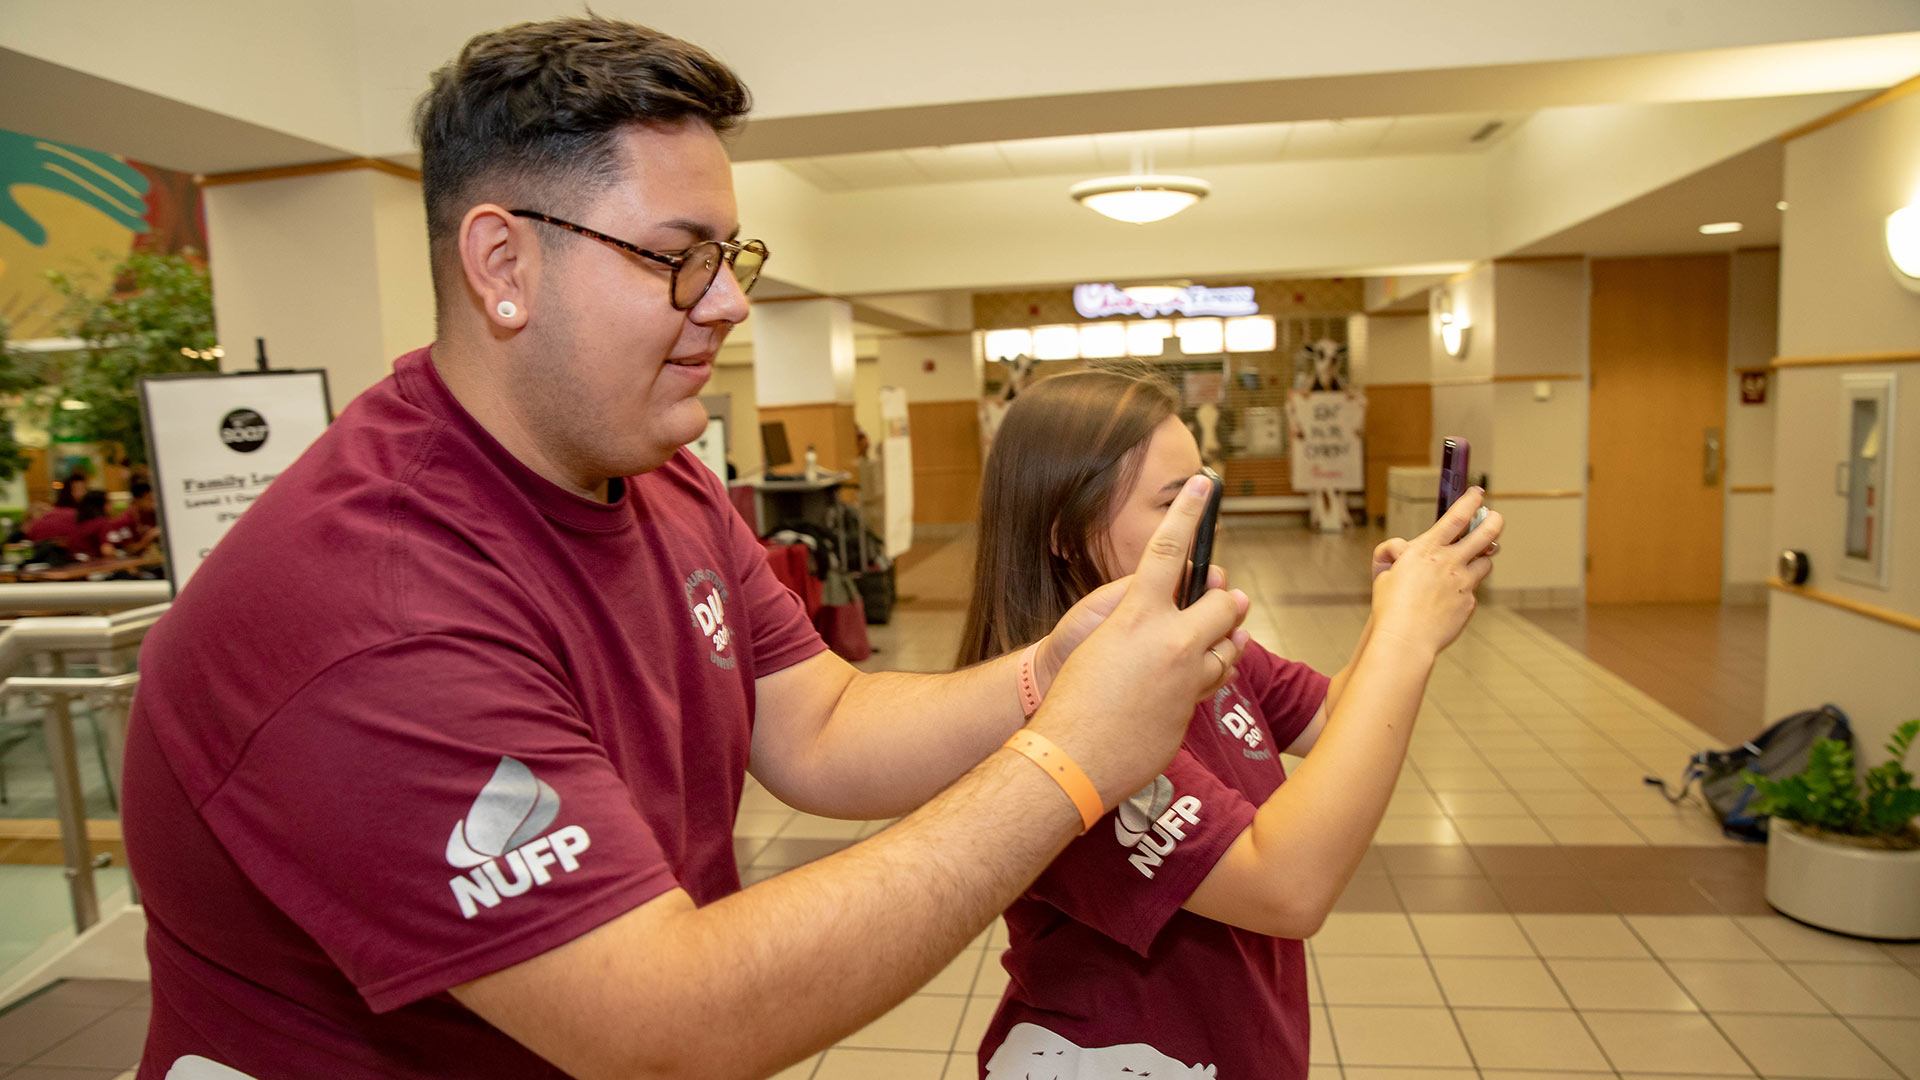 Missouri State students in maroon T-shirts taking photos with their smartphones.